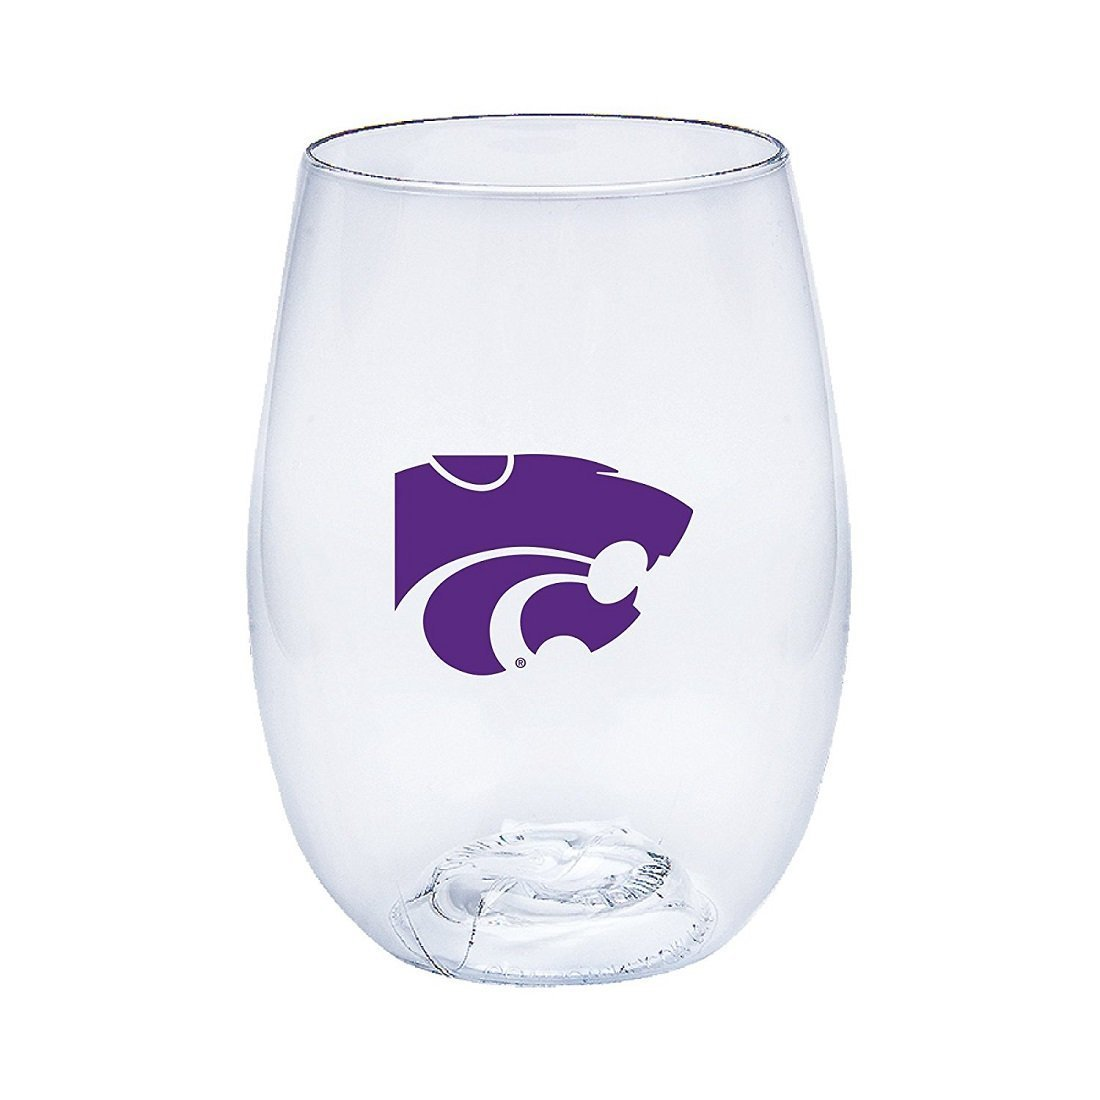 Kansas State Wildcats Govino Shatterproof Wine or Beverage Glasses - Boxed set of 4